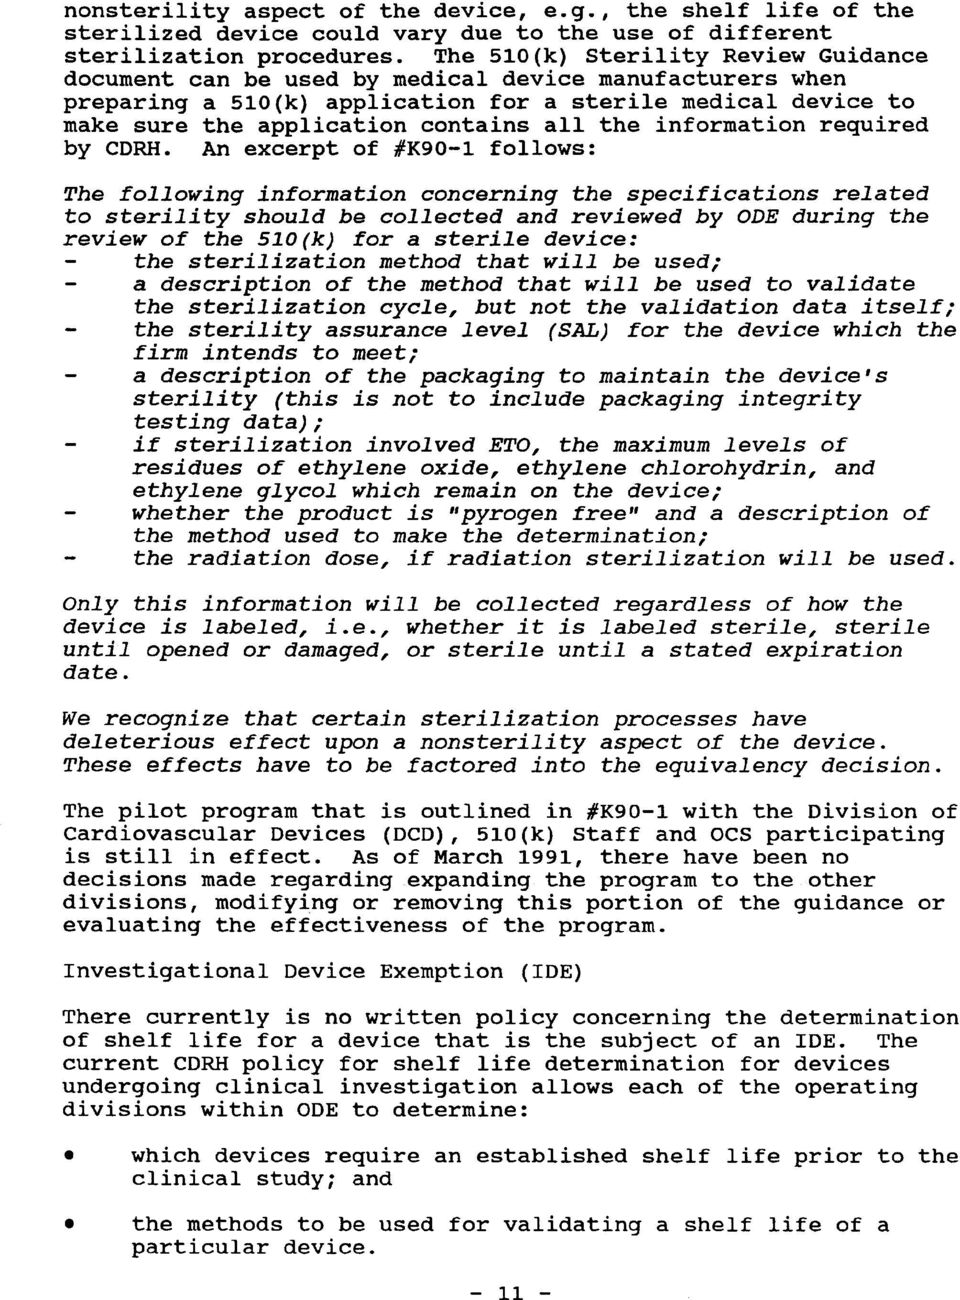 This guidance was written prior to the February 27, 1997